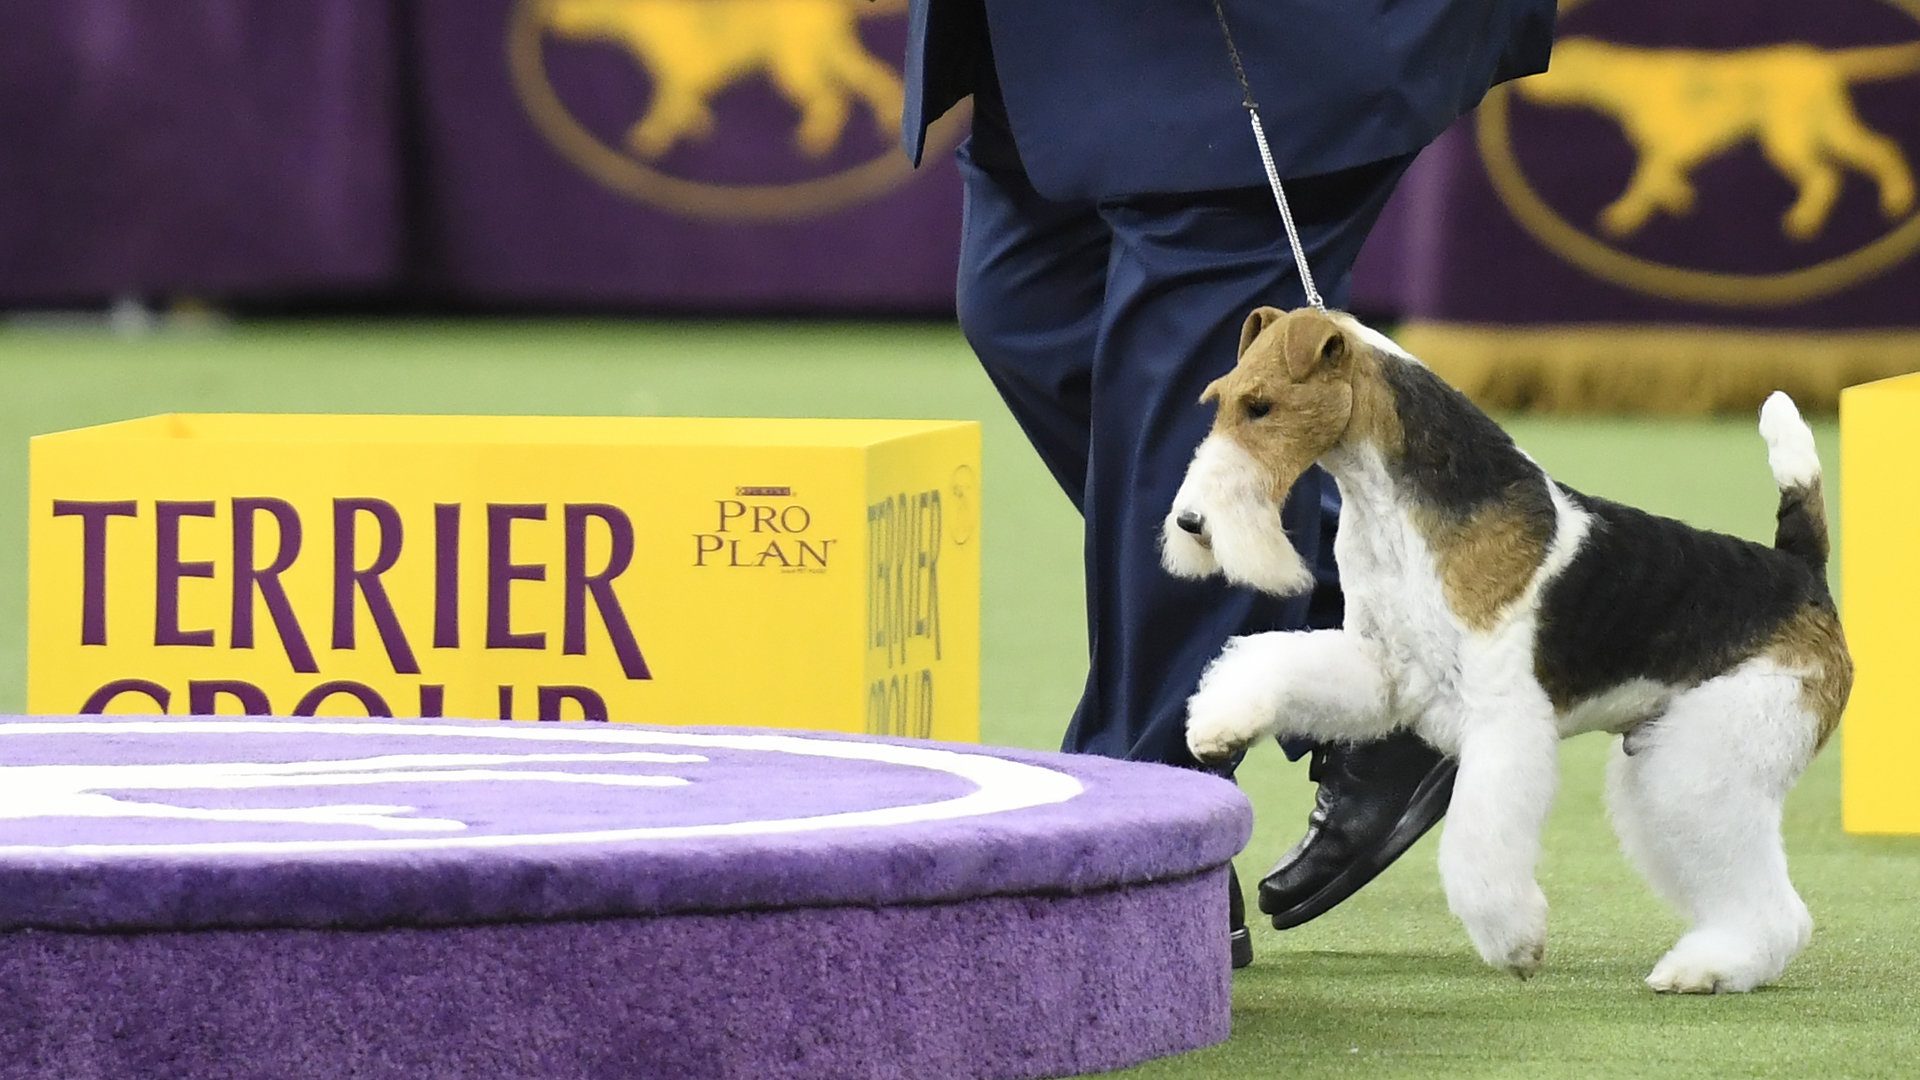 King, a Wire Fox Terrier and handler celebrate after winning the Terrier Group judging at the 143rd Westminster Kennel Club Dog Show at Madison Square Garden on Feb. 12, 2019, in New York City. (Credit: Sarah Stier/Getty Images)